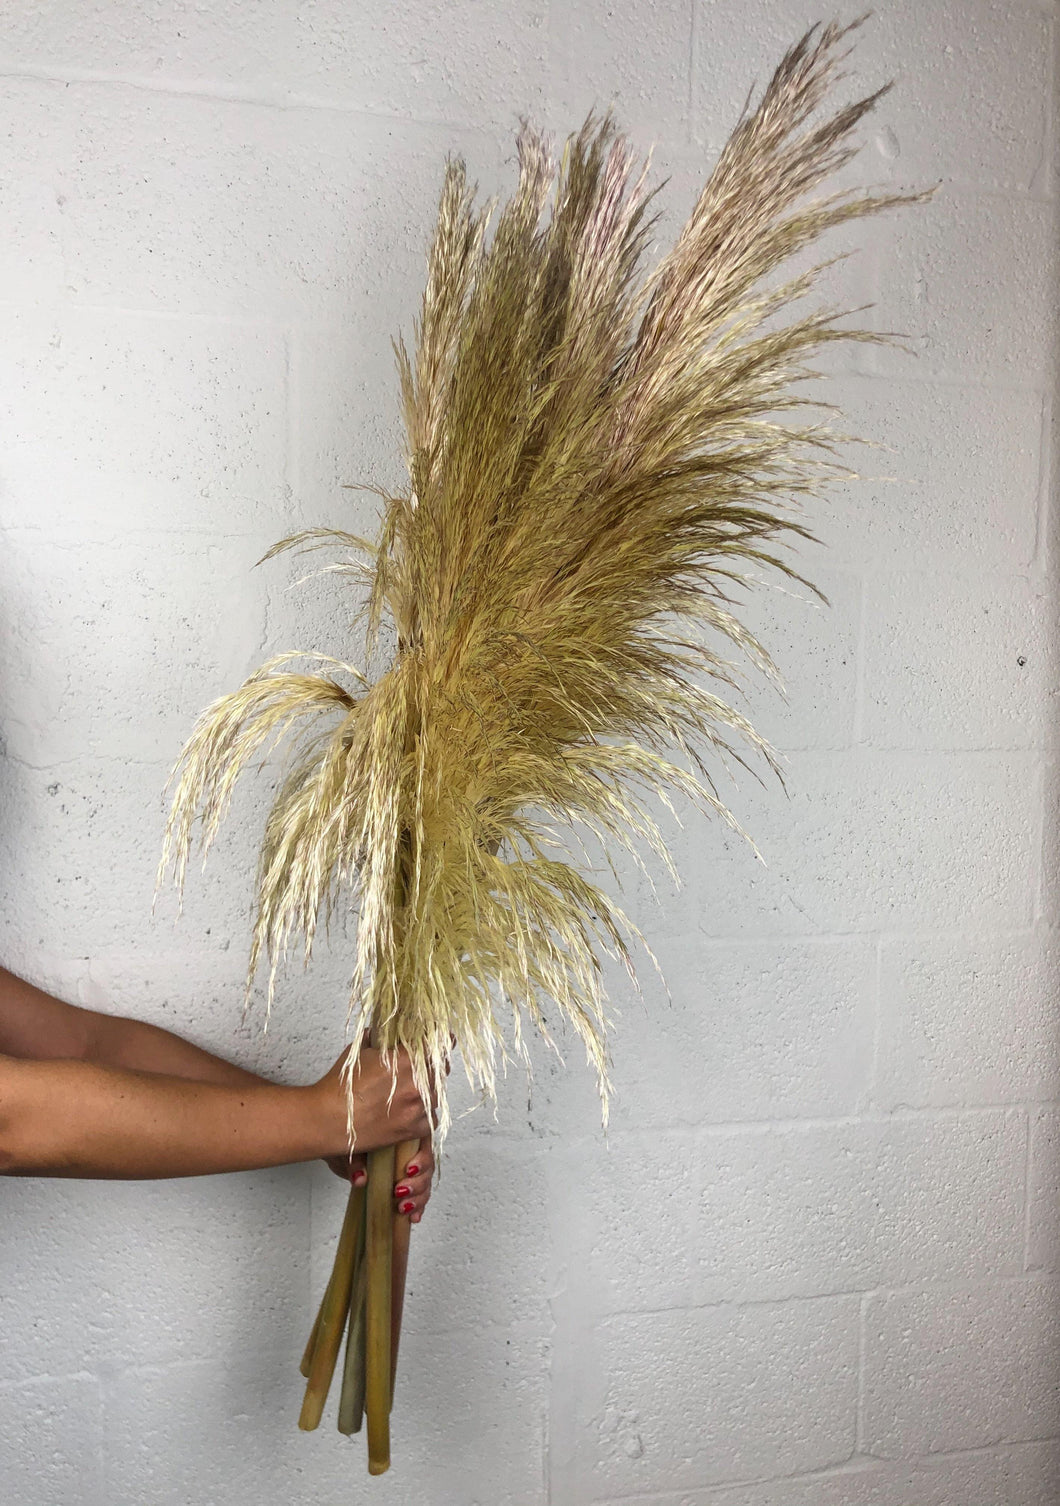 California Grown Pampas Grass